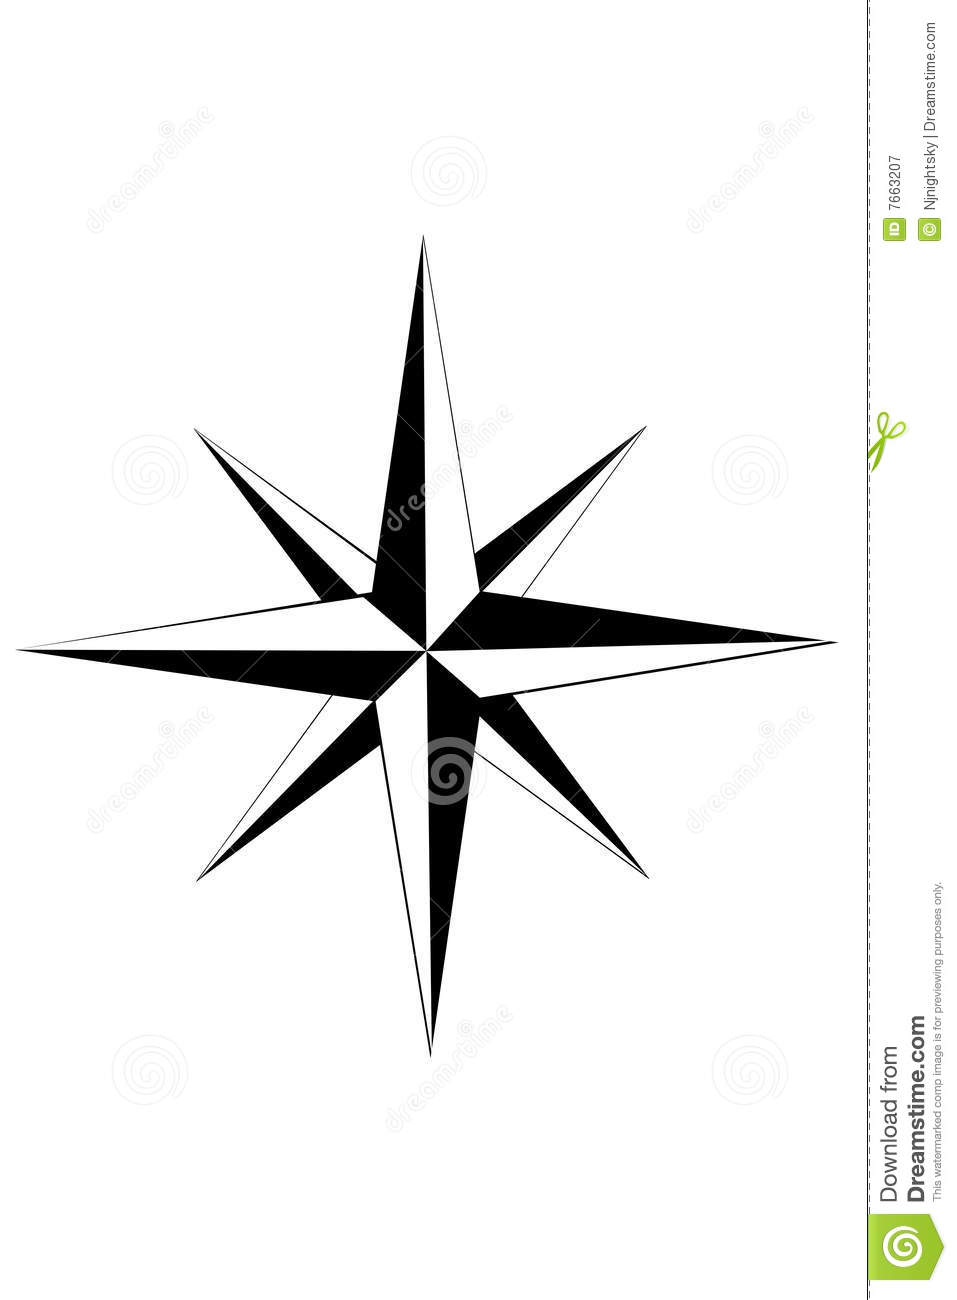 Nautical Star Royalty Free Stock Photography - Image: 7663207